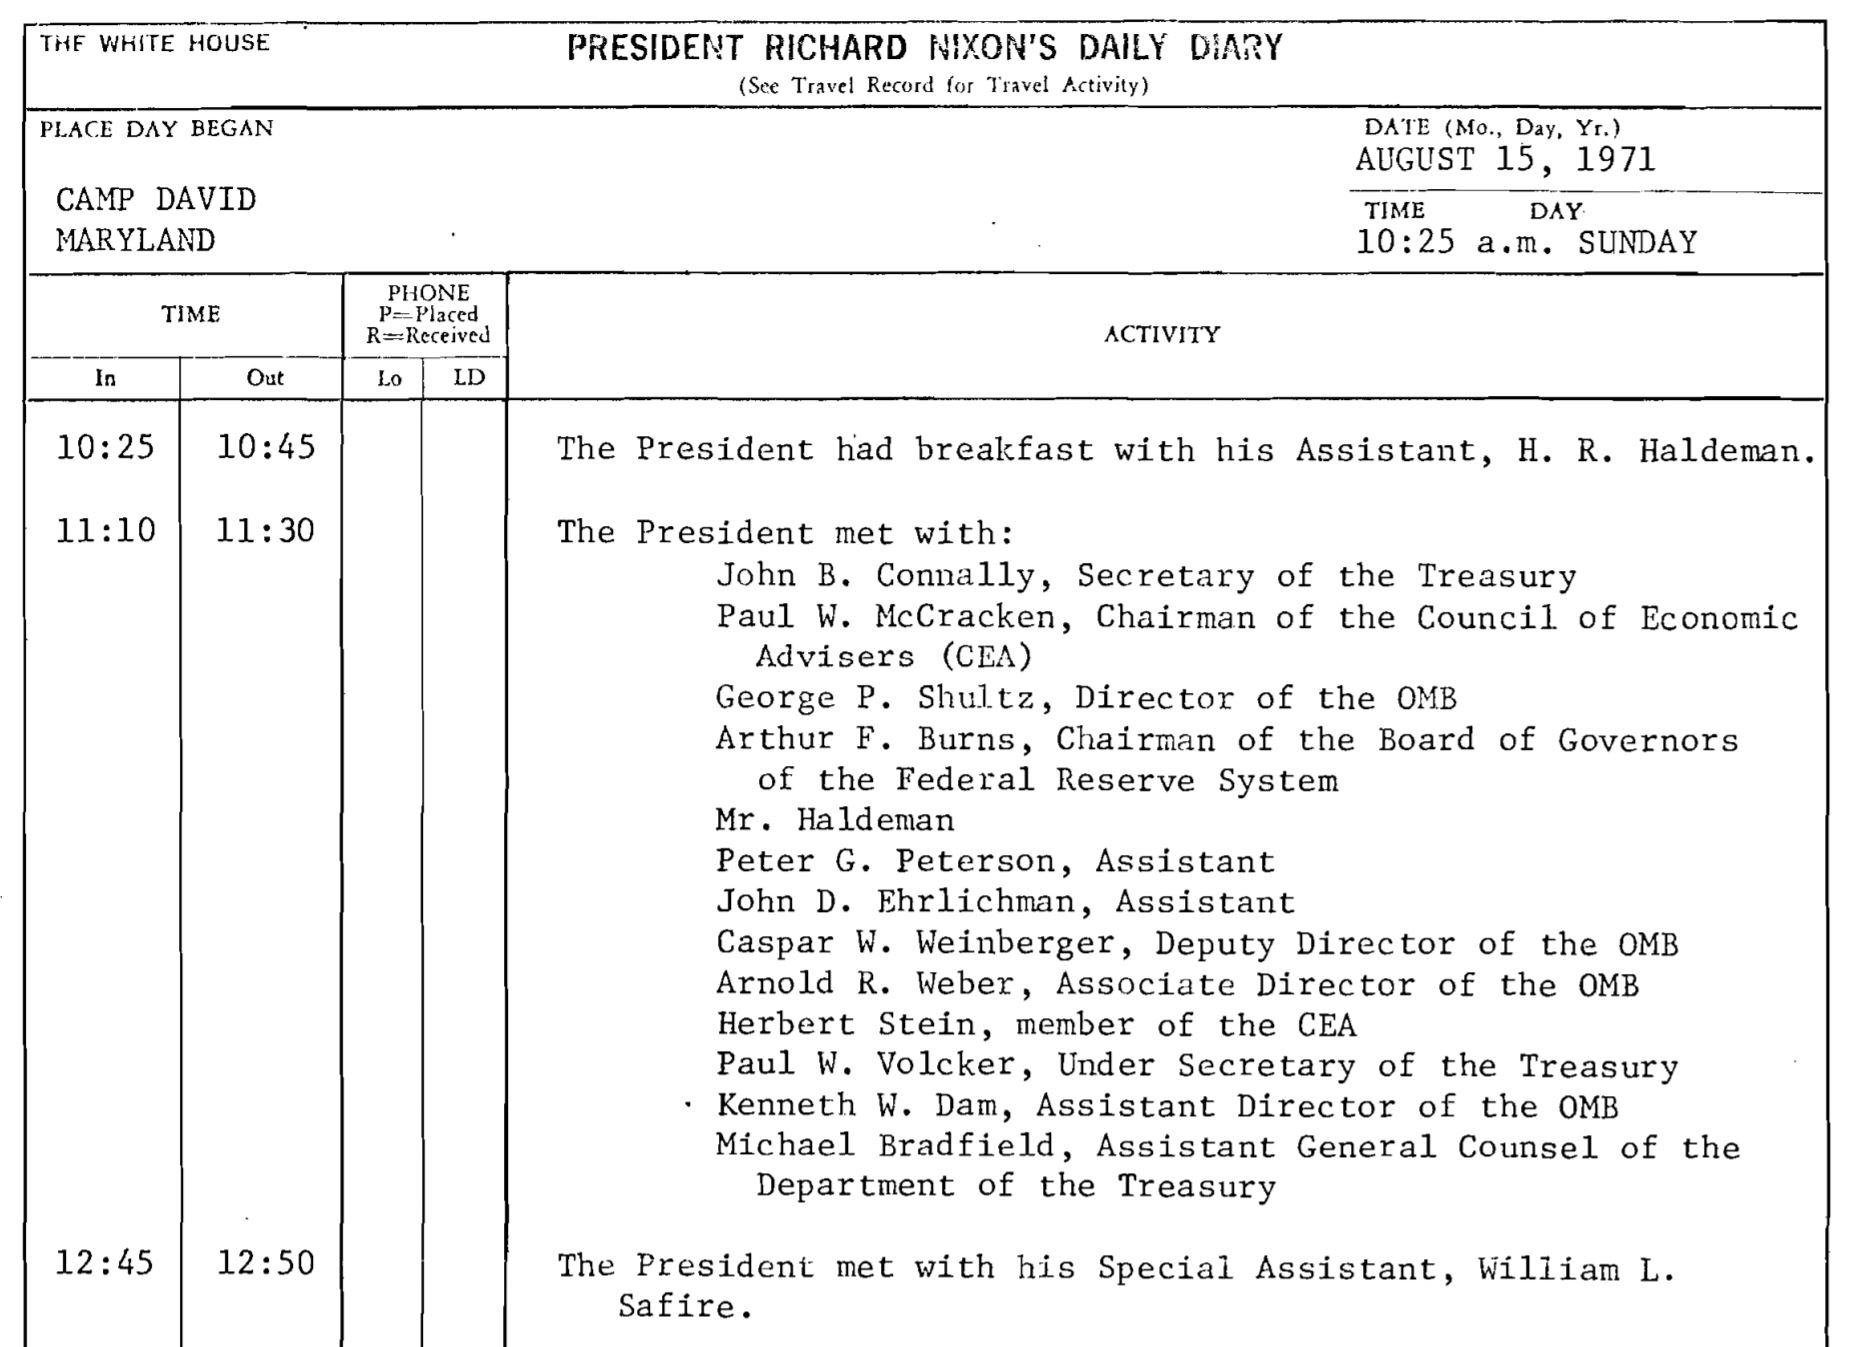 Richard M. Nixon. (Aug. 01-15, 1971). Richard Nixon's Daily Diary, Aug. 01-15, 1973, PDF p. 88. Richard Nixon Presidential Library.